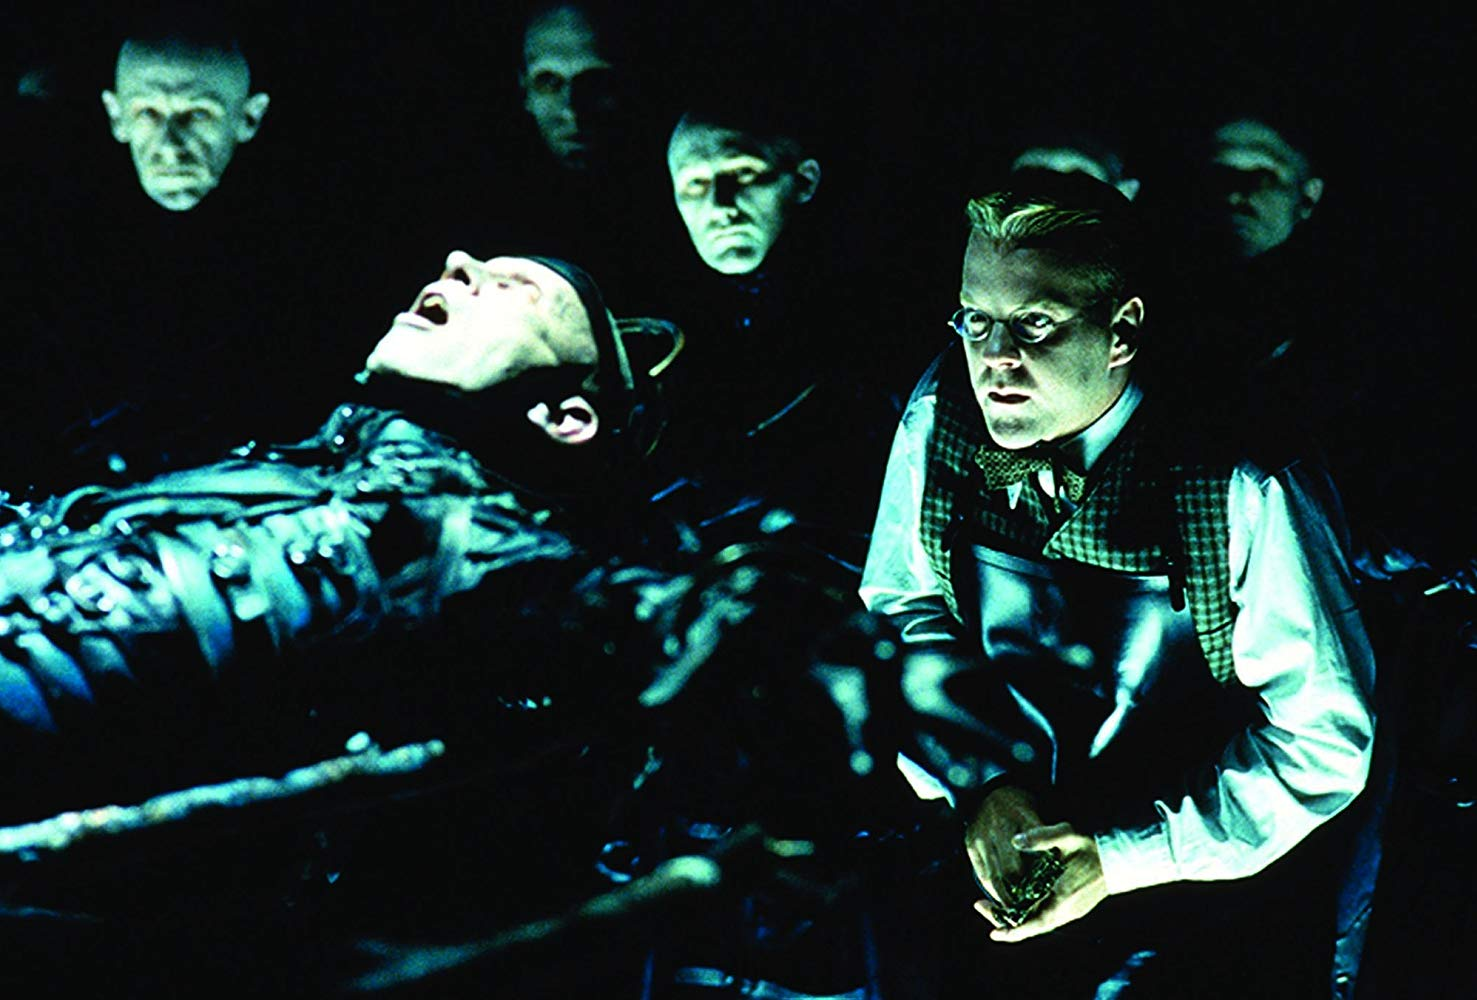 Kiefer Sutherland engaged in experiments surrounded by The Strangers in Dark City (1998)